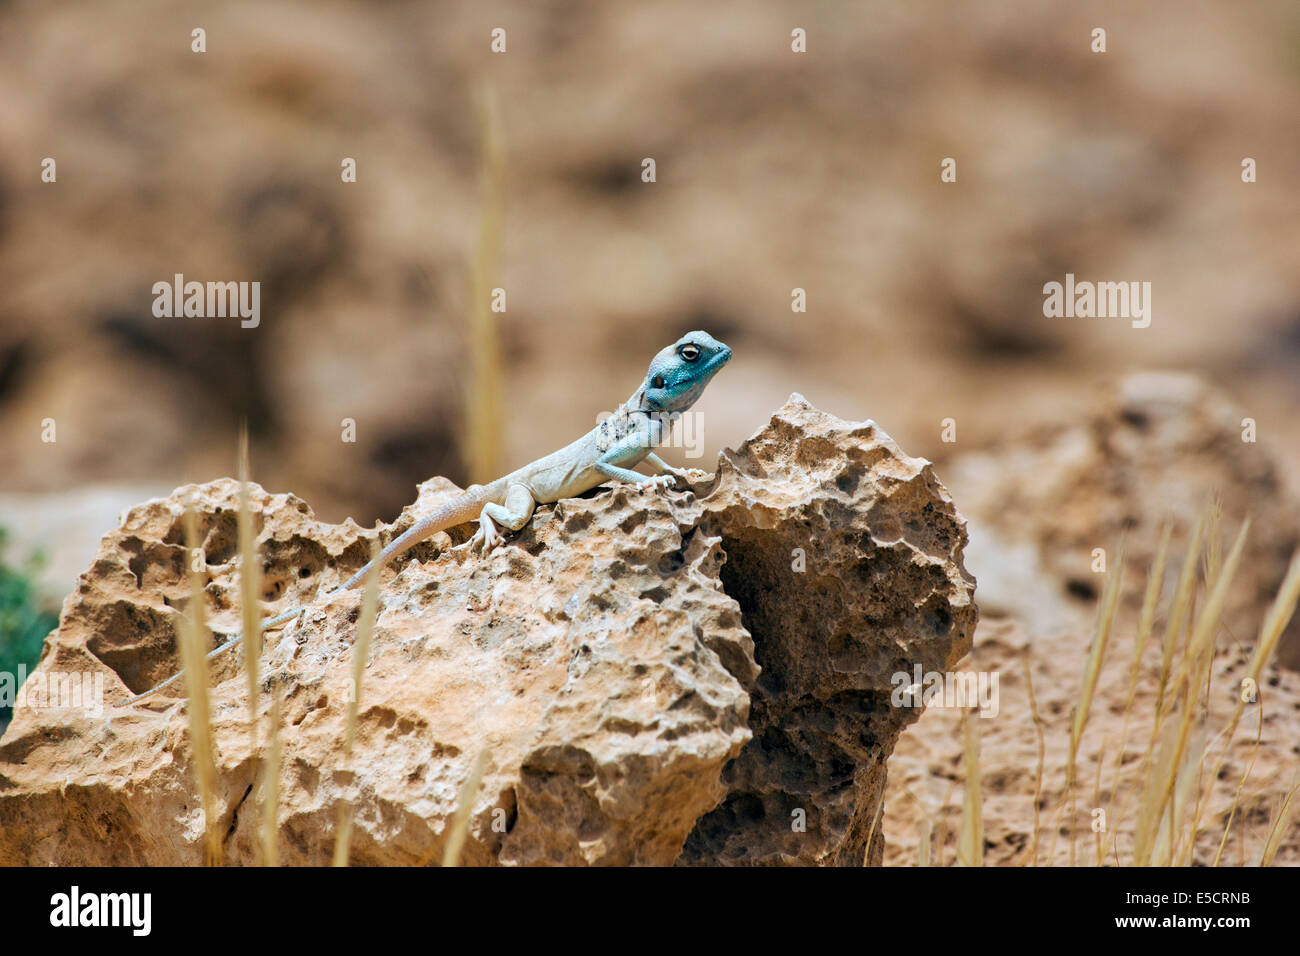 Sinai agama (Pseudotrapelus sinaitus, formerly Agama sinaita) basking on a rock. Photographed in Israel in May - Stock Image